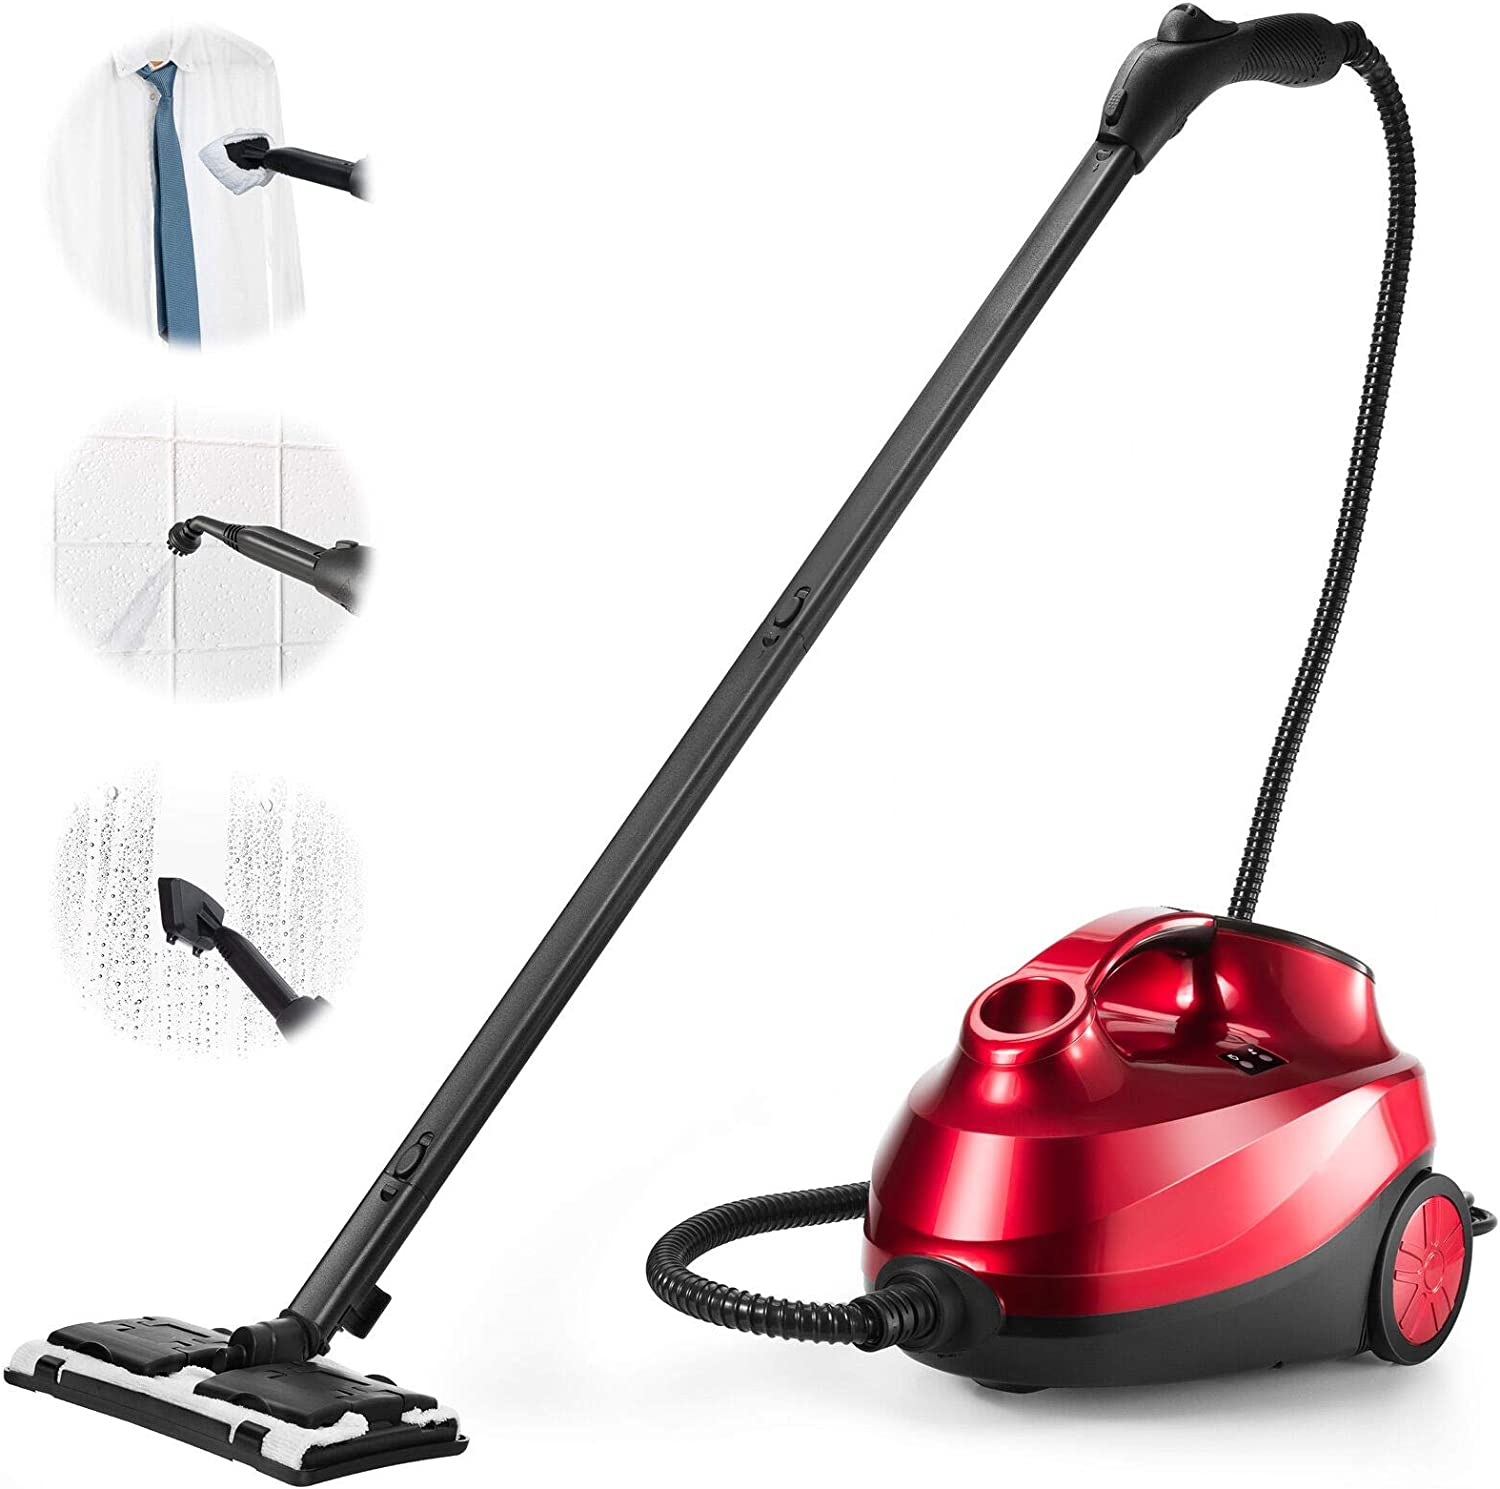 ARLIME Steam Cleaner with 19 Accessories, Multipurpose Heavy Duty Household Steamer with 1.5L Tank & Extra-Long Power Cord, Chemical-Free Cleaning for Carpet, Cars, Floors, Home use and More, 2000W